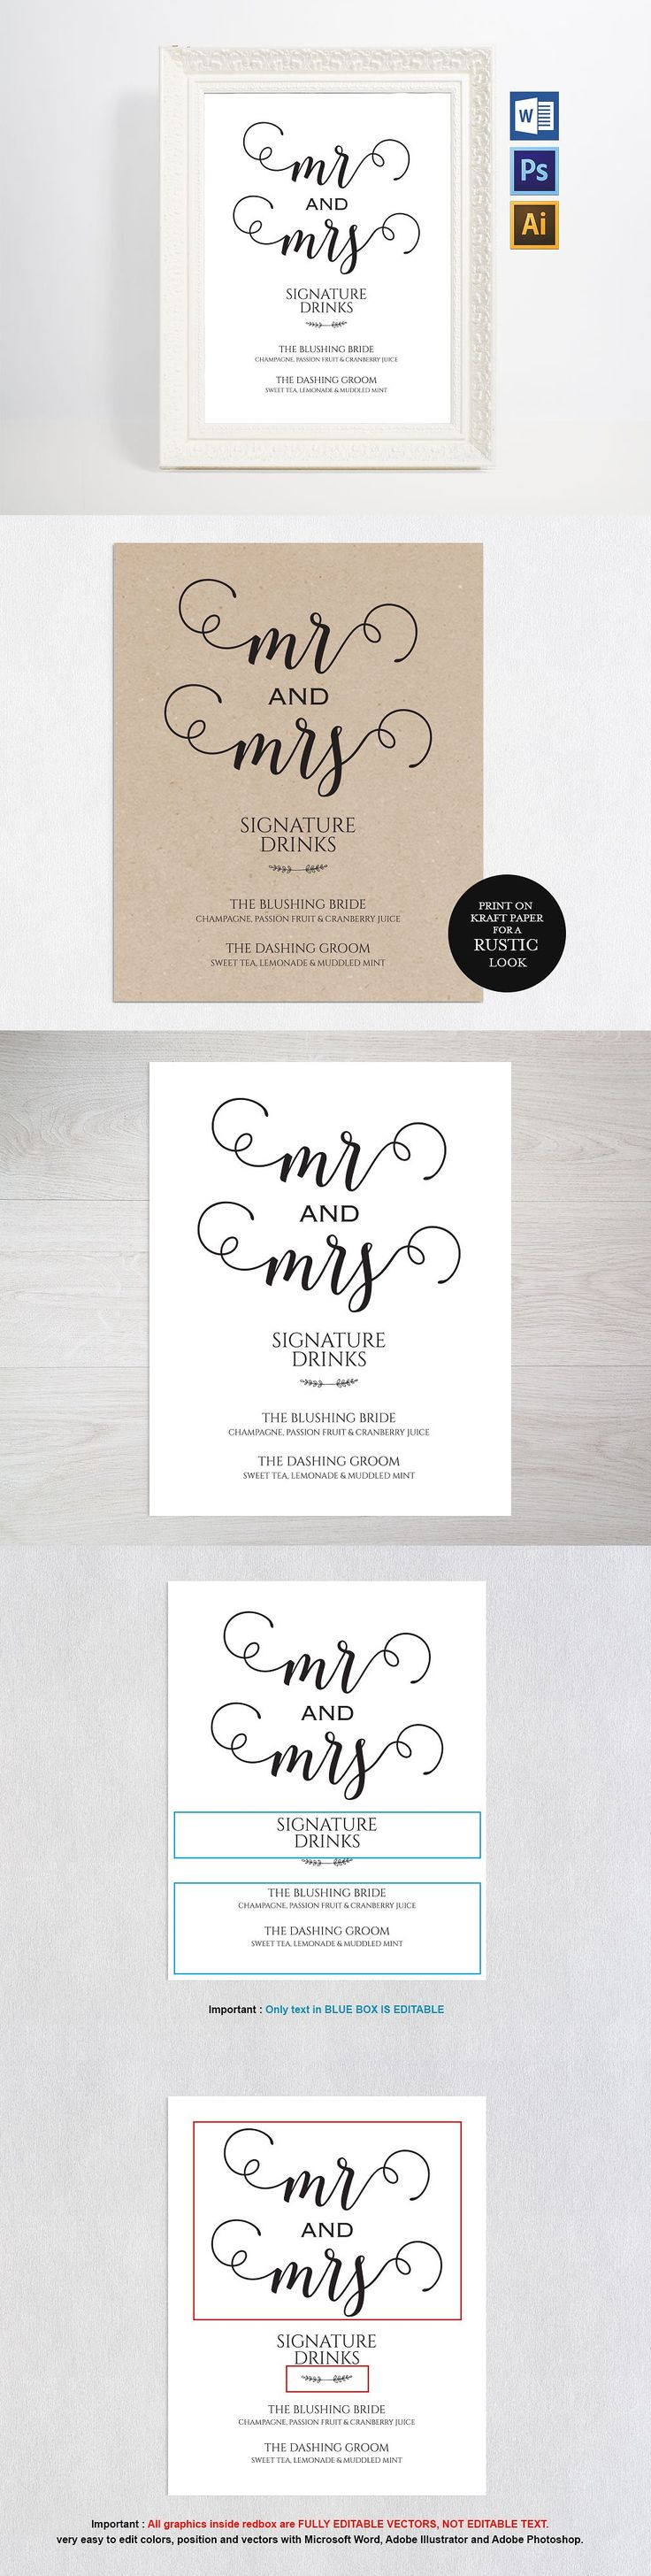 Signature Drink Sign Wpc77 Templates EPS, AI, PSD